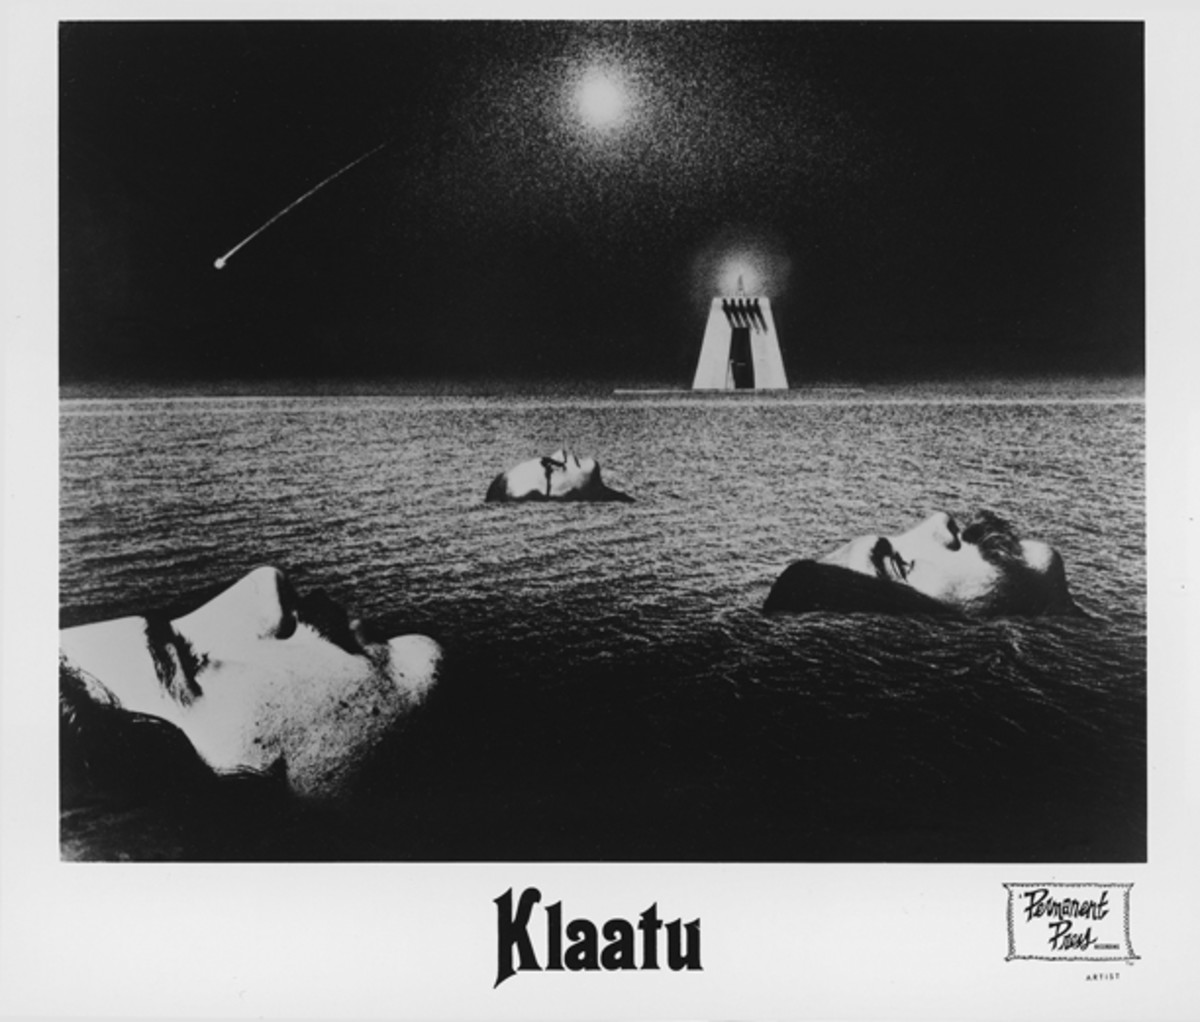 Klaatu publicity photo